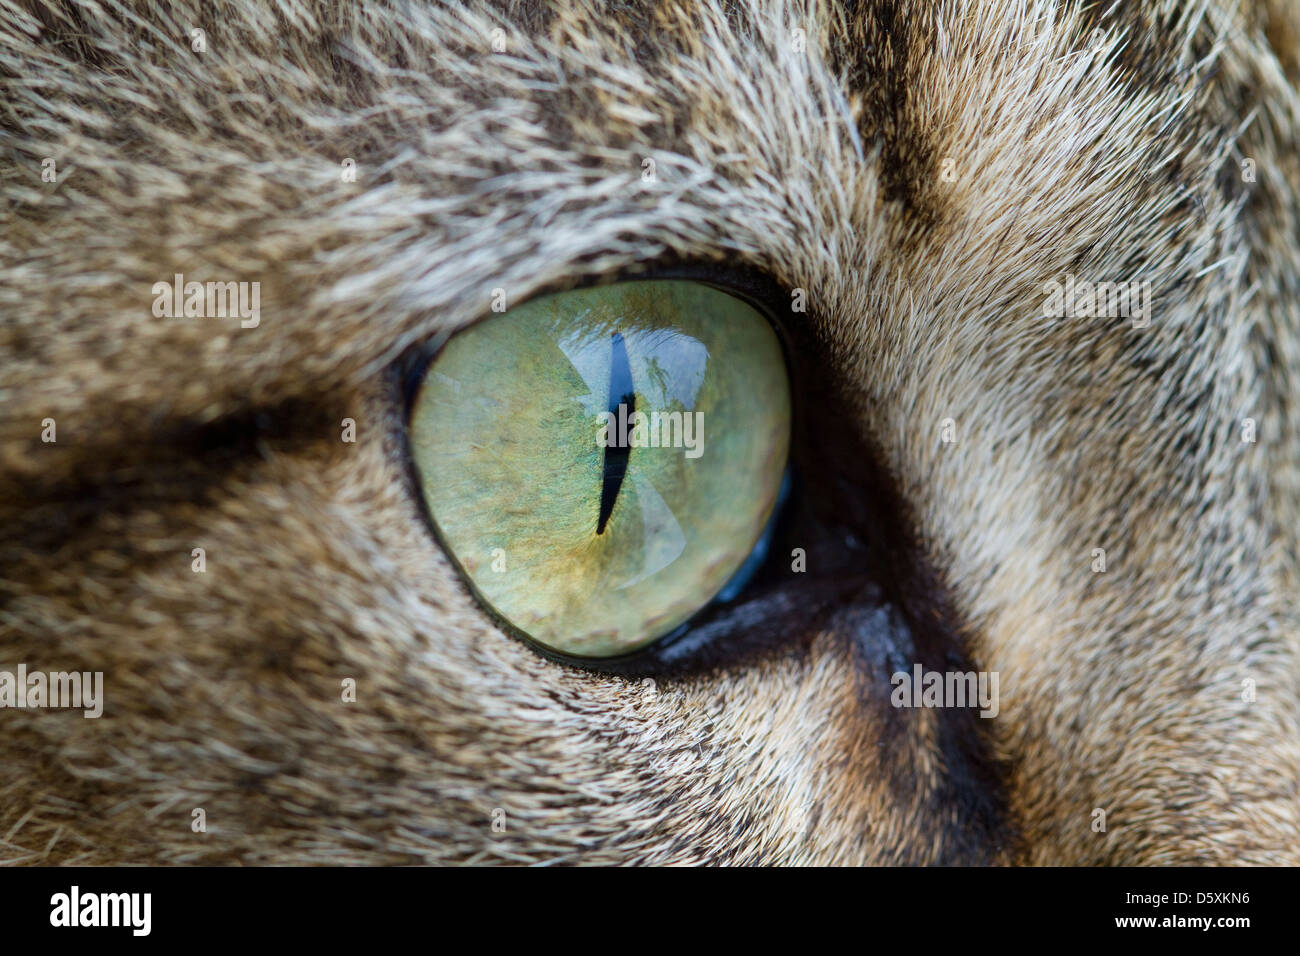 DOMESTIC CAT EYE - Stock Image